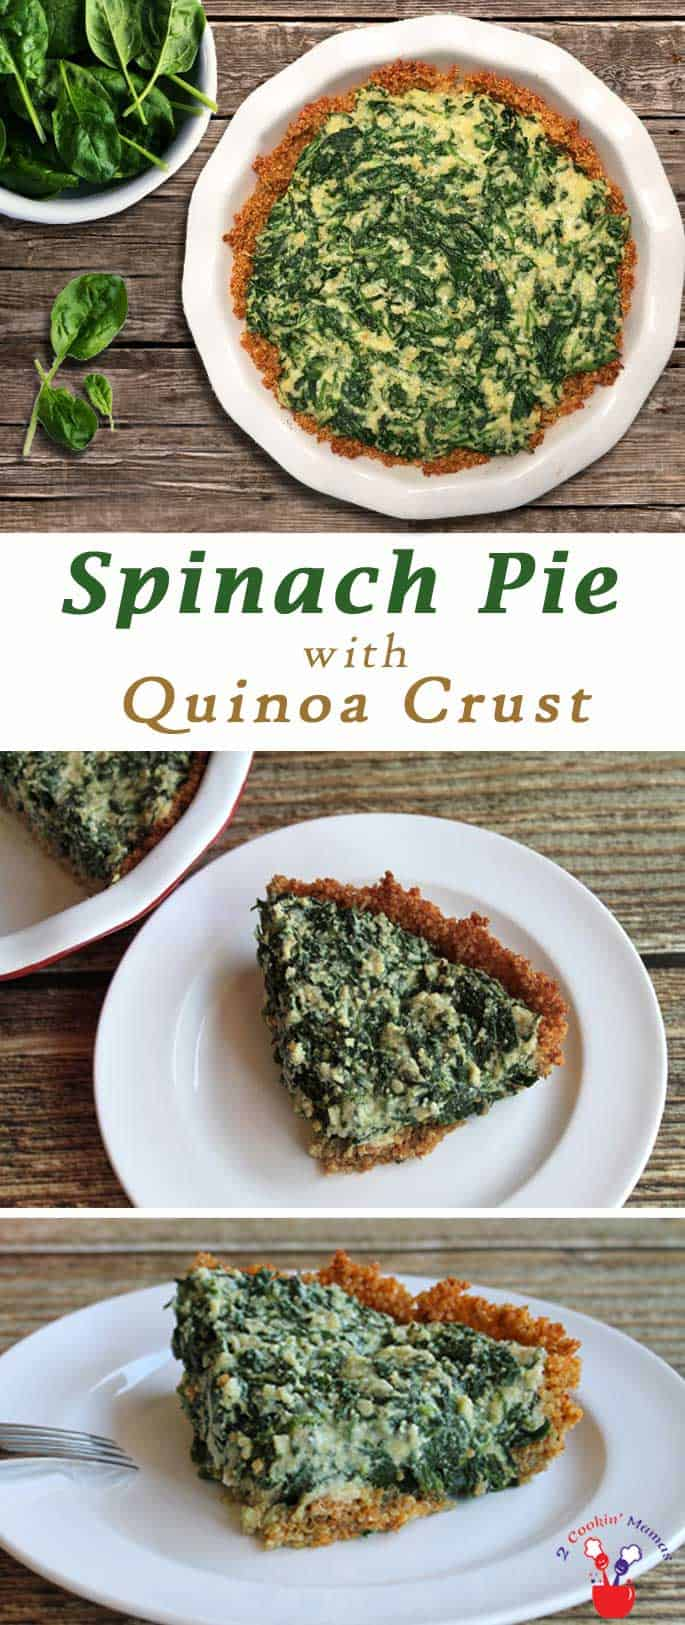 Spinach Pie with Quinoa Crust | 2 Cookin Mamas A delicious gluten-free spinach pie that even your non gluten-free friends will love! It's a healthy side dish set into a tasty, crunchy quinoa crust.